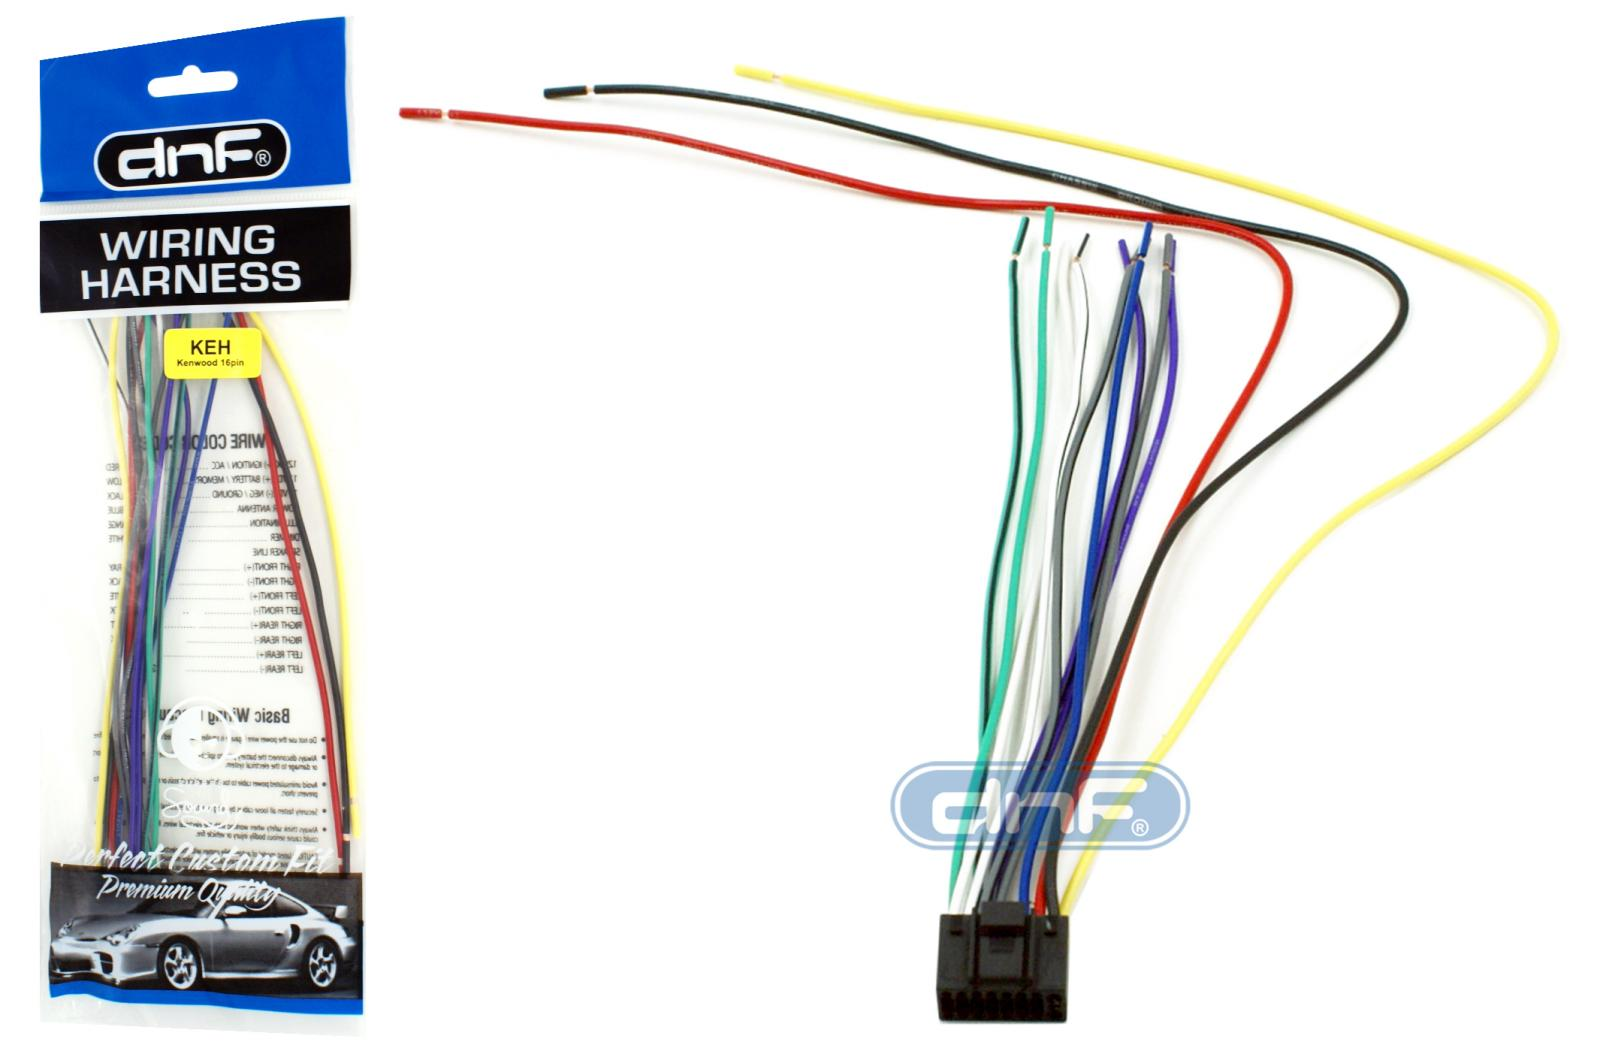 Kenwood Kdc 300 Cd Player Wiring Diagram Library Further Head Unit On Changer Harness 16 Pin 138 215s 217 Ships Today X589